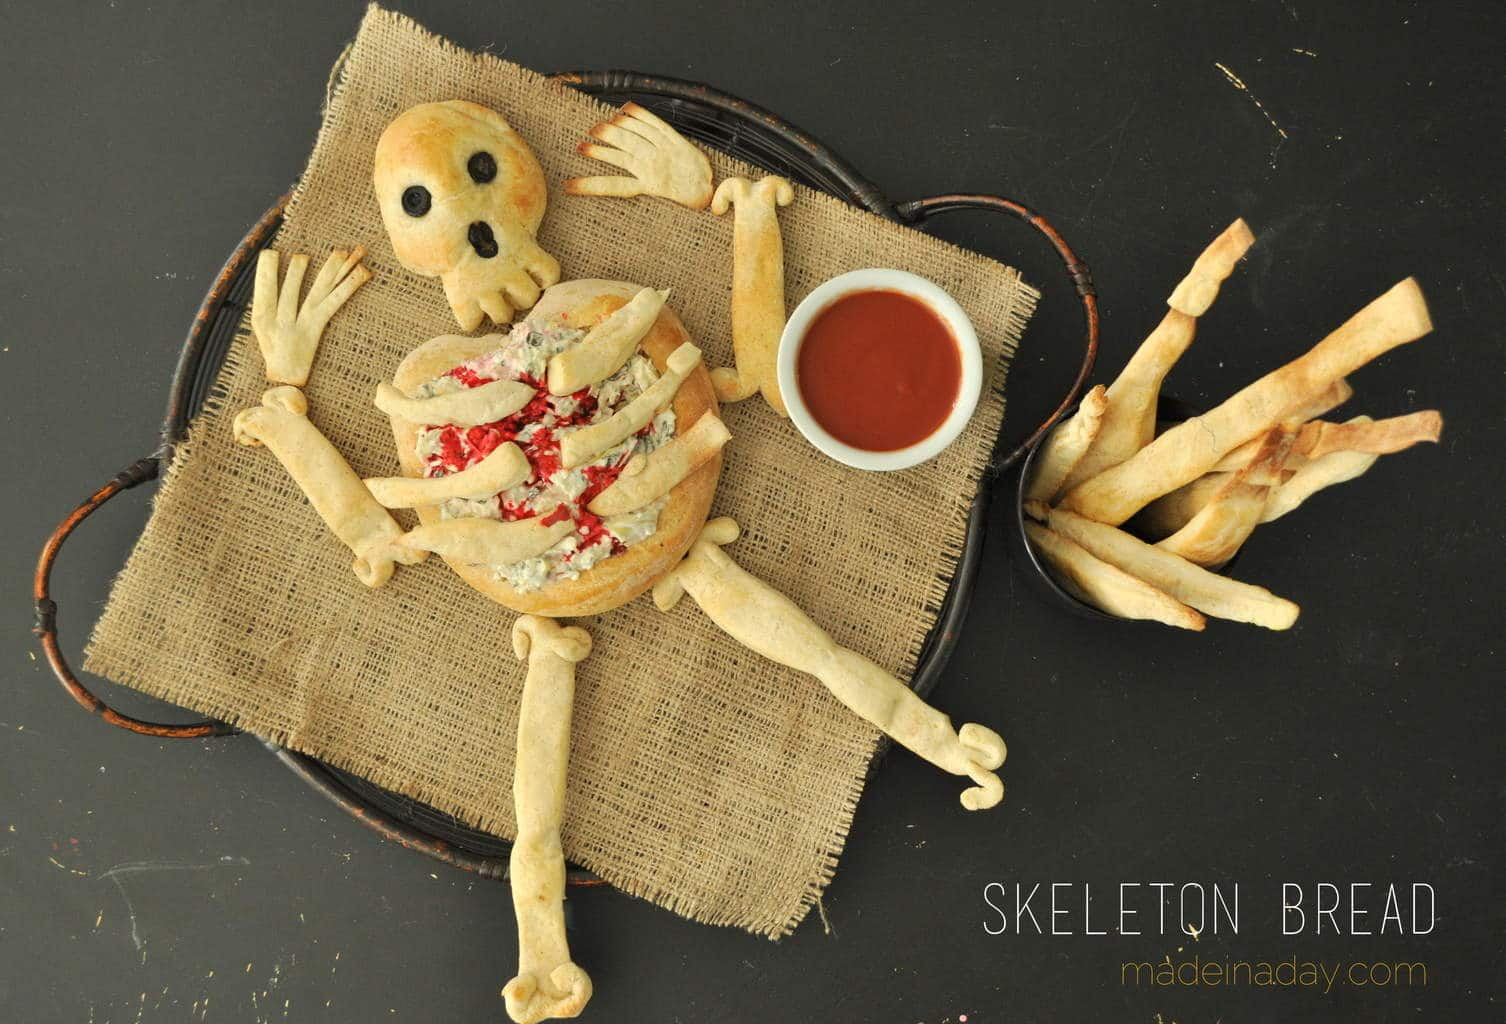 Skeleton Bread & Breadsticks madeinaday.com